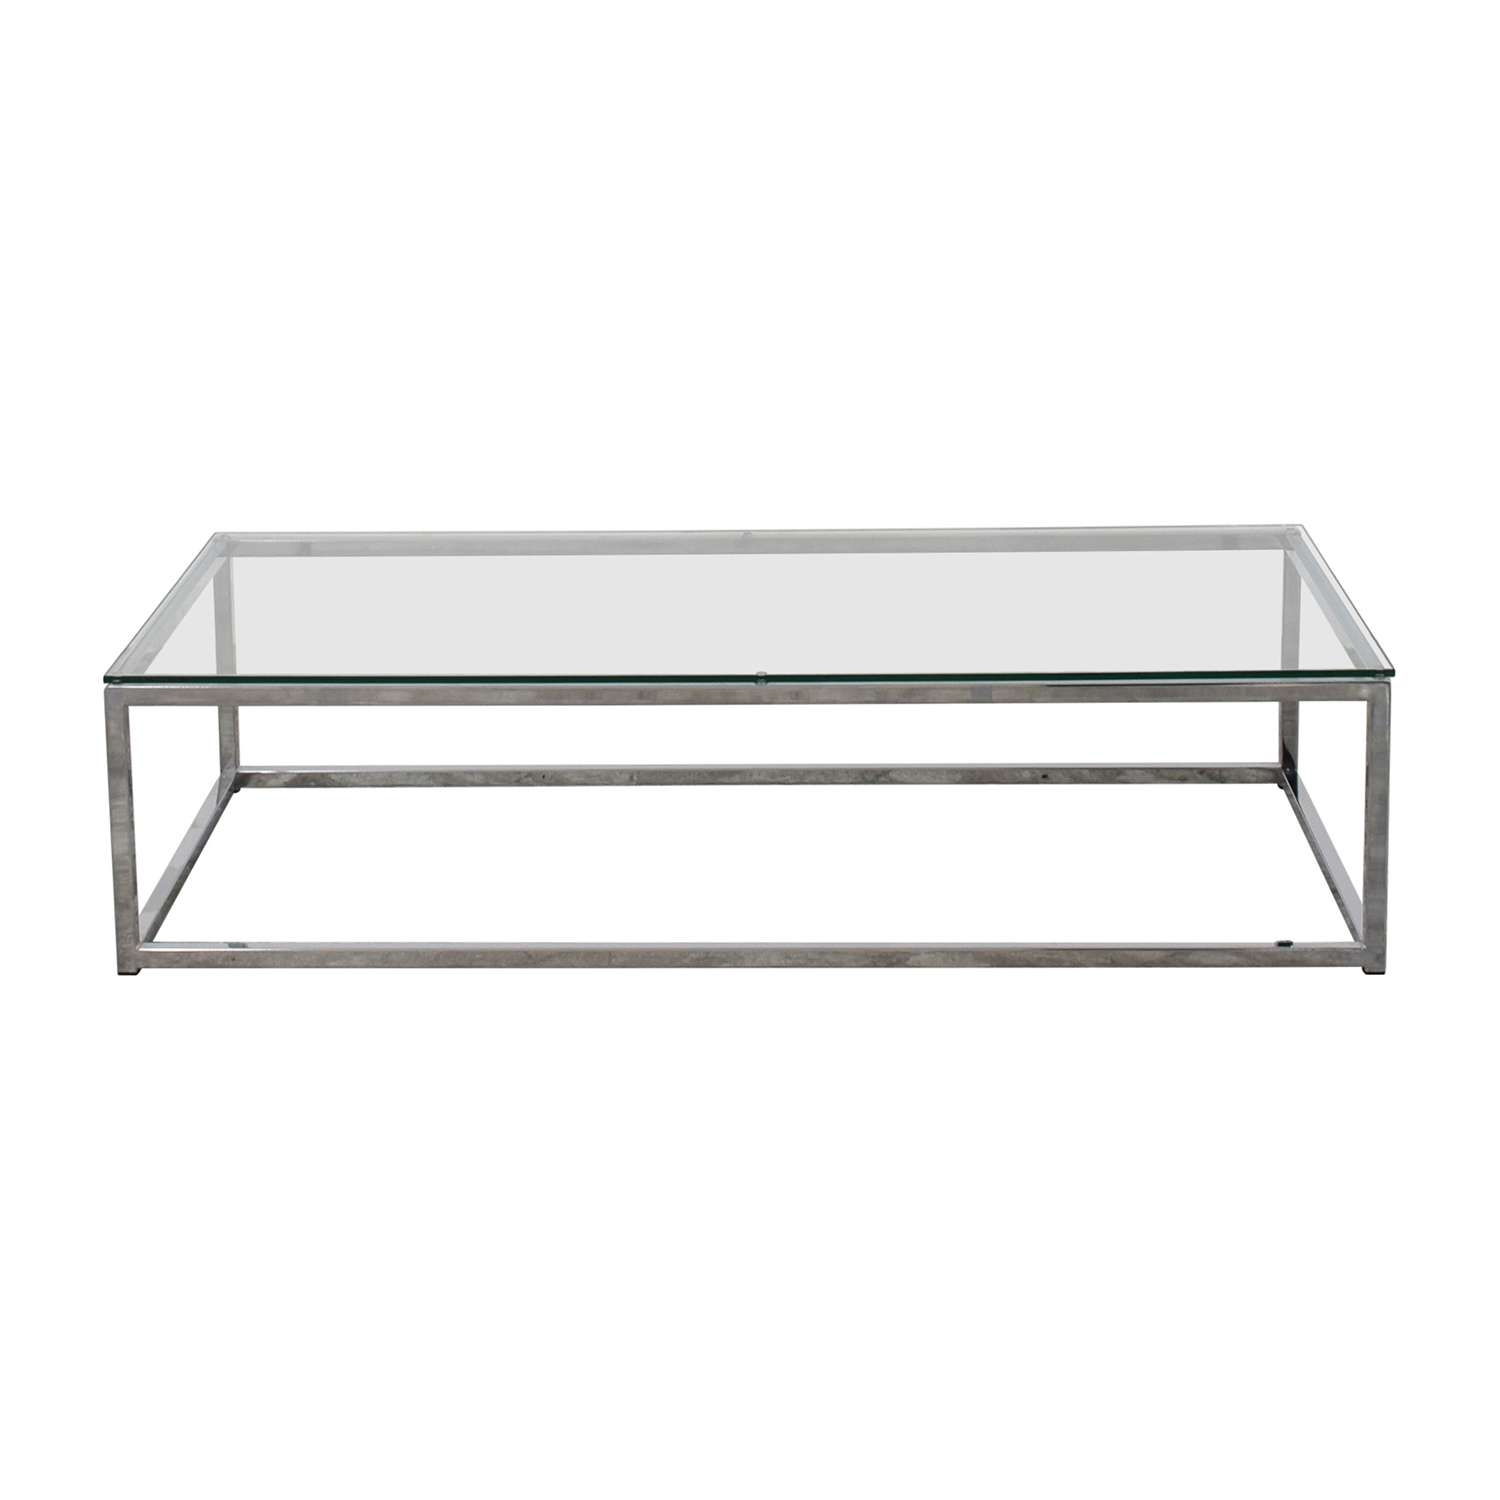 [%most Recent Glass Chrome Coffee Tables Throughout 45% Off – Cb2 Cb2 Glass And Chrome Coffee Table / Tables|45% Off – Cb2 Cb2 Glass And Chrome Coffee Table / Tables With Newest Glass Chrome Coffee Tables%] (View 19 of 20)